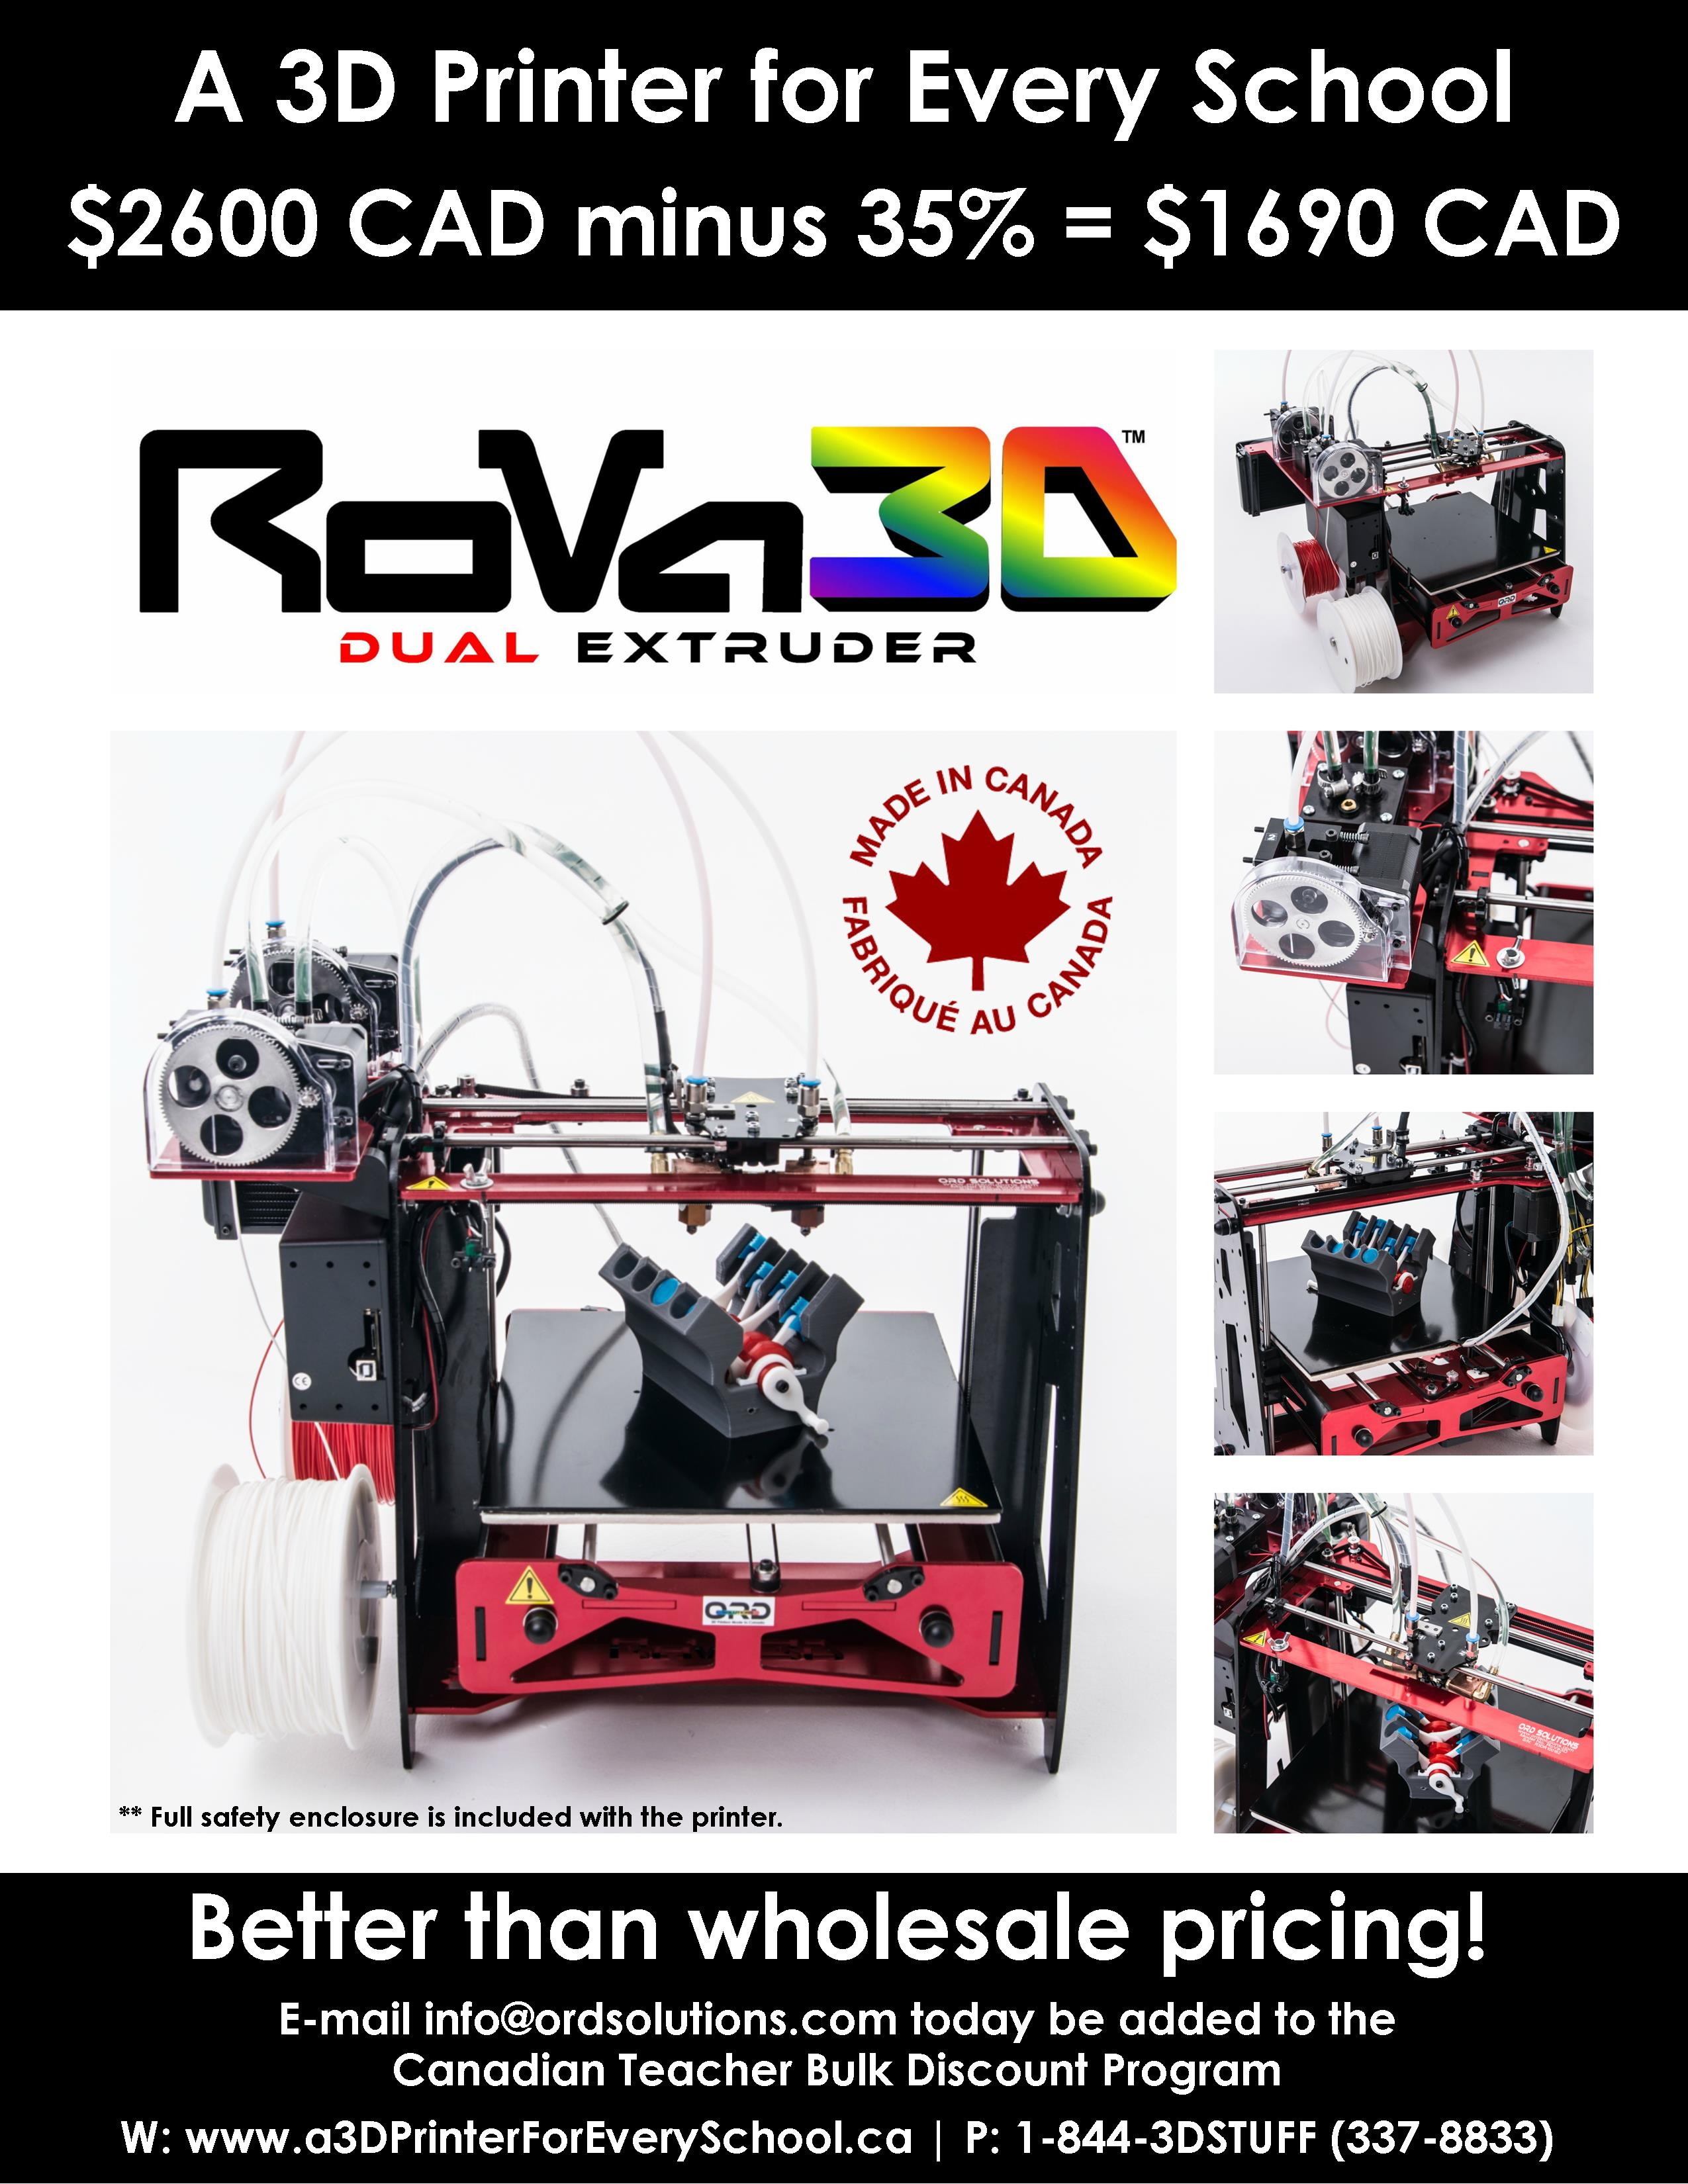 3d-printer-for-every-school-flyer-page-1.jpg